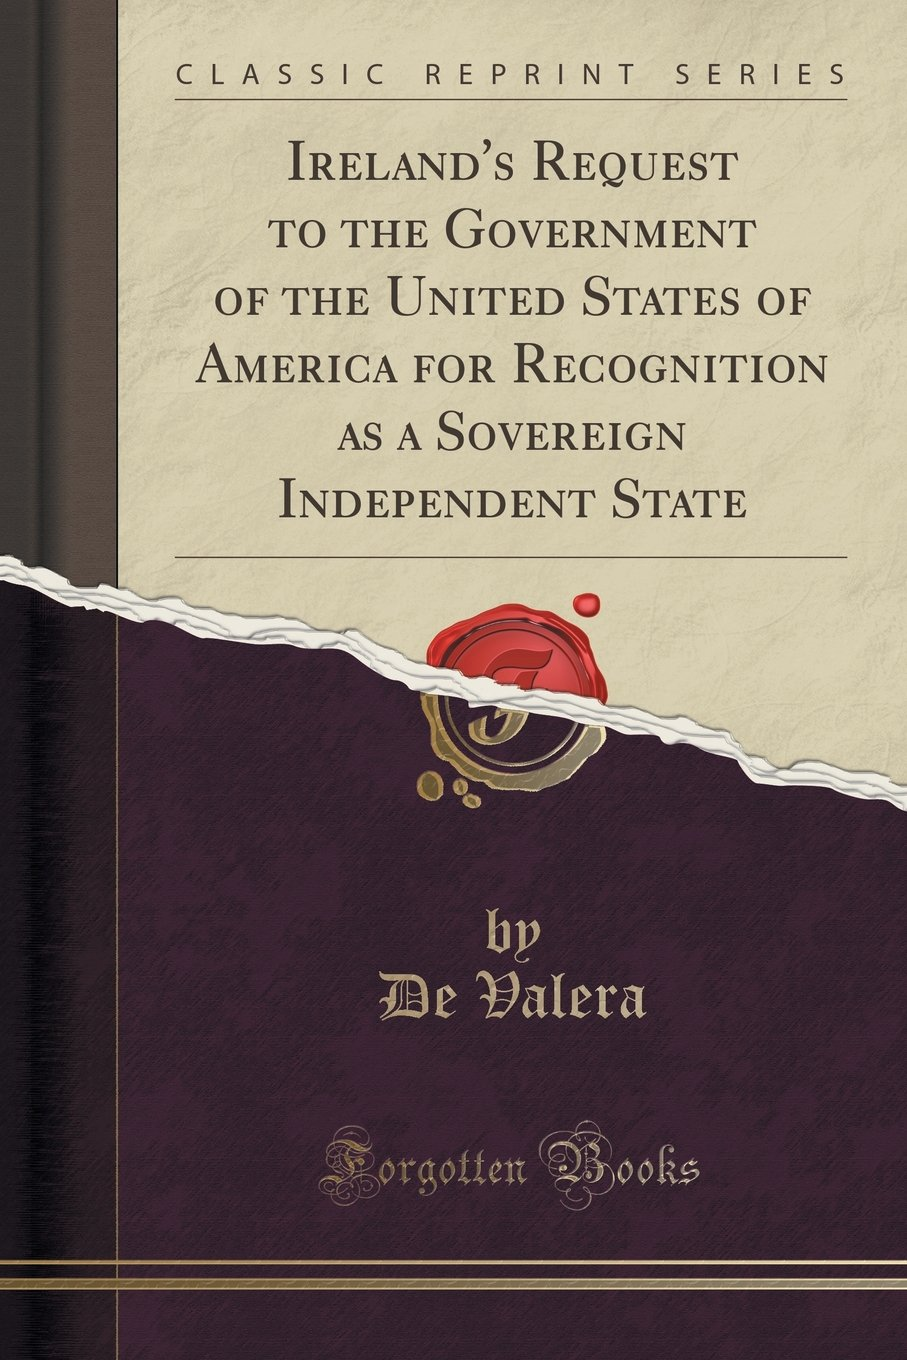 Ireland's Request to the Government of the United States of America for Recognition as a Sovereign Independent State (Classic Reprint) pdf